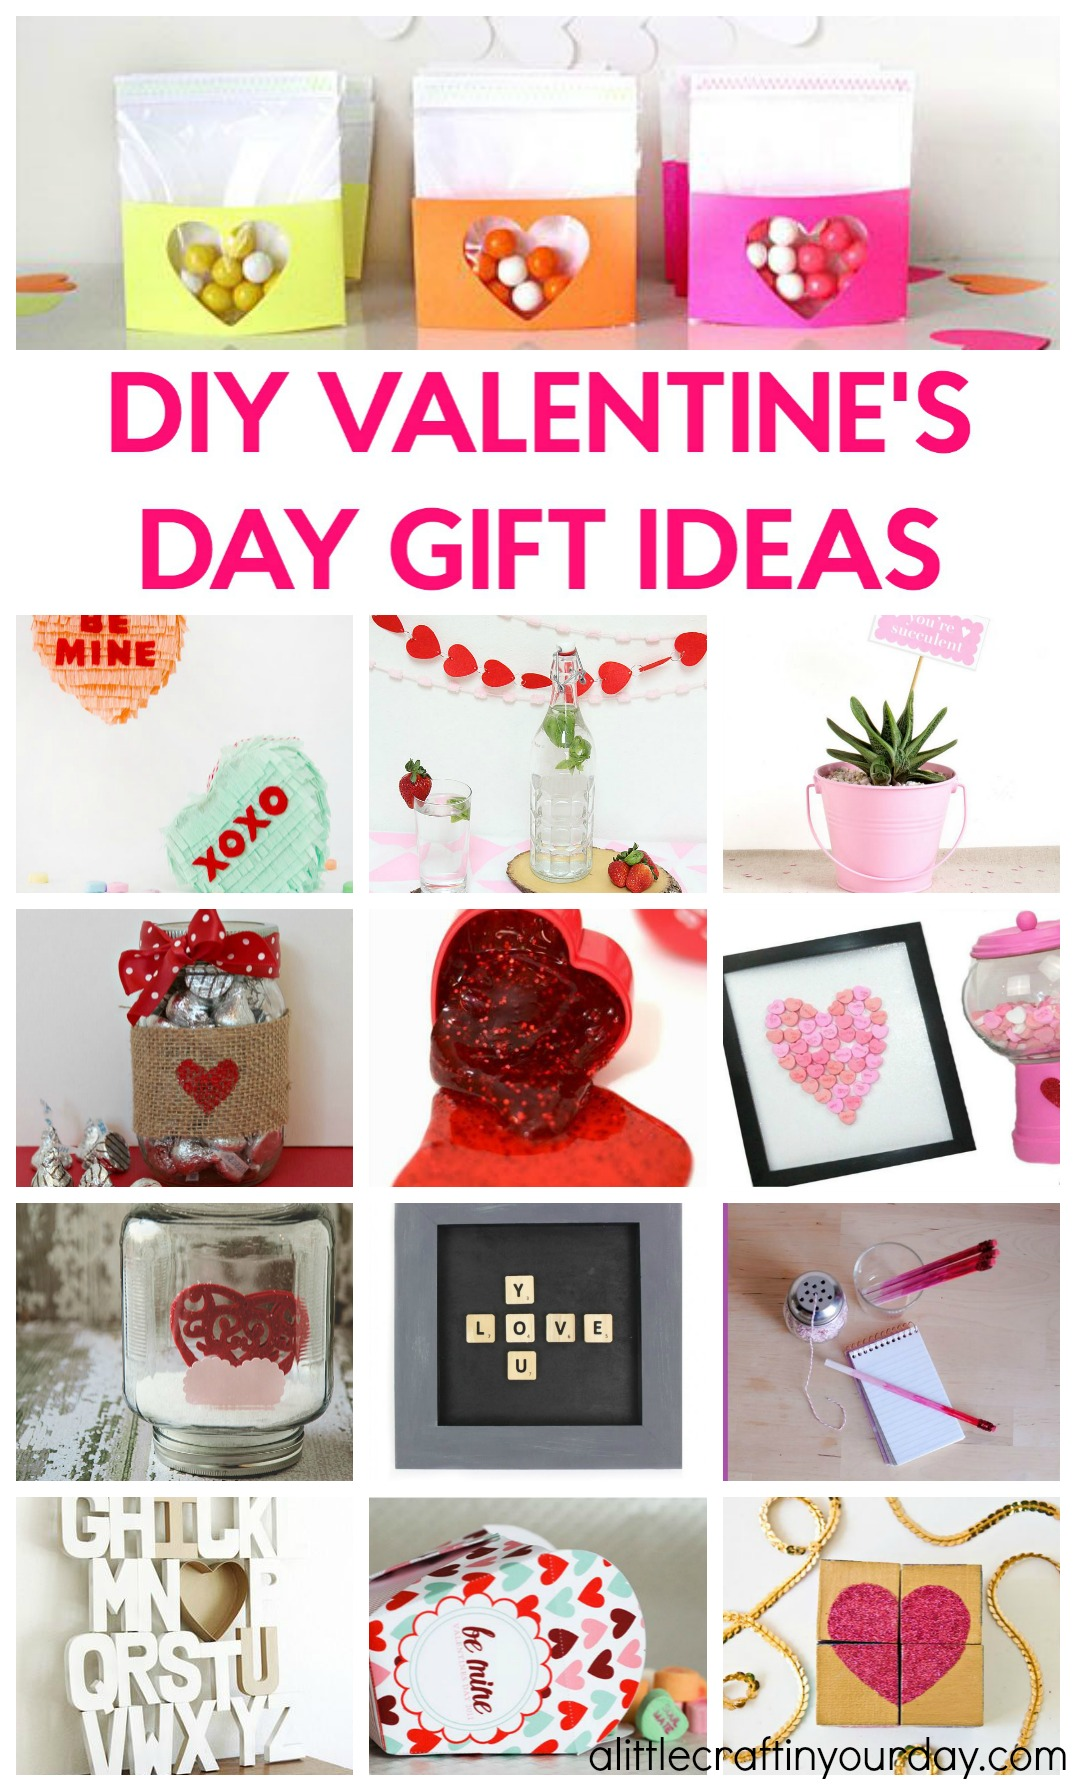 1/31 | DIY Valentines Day Gift Ideas